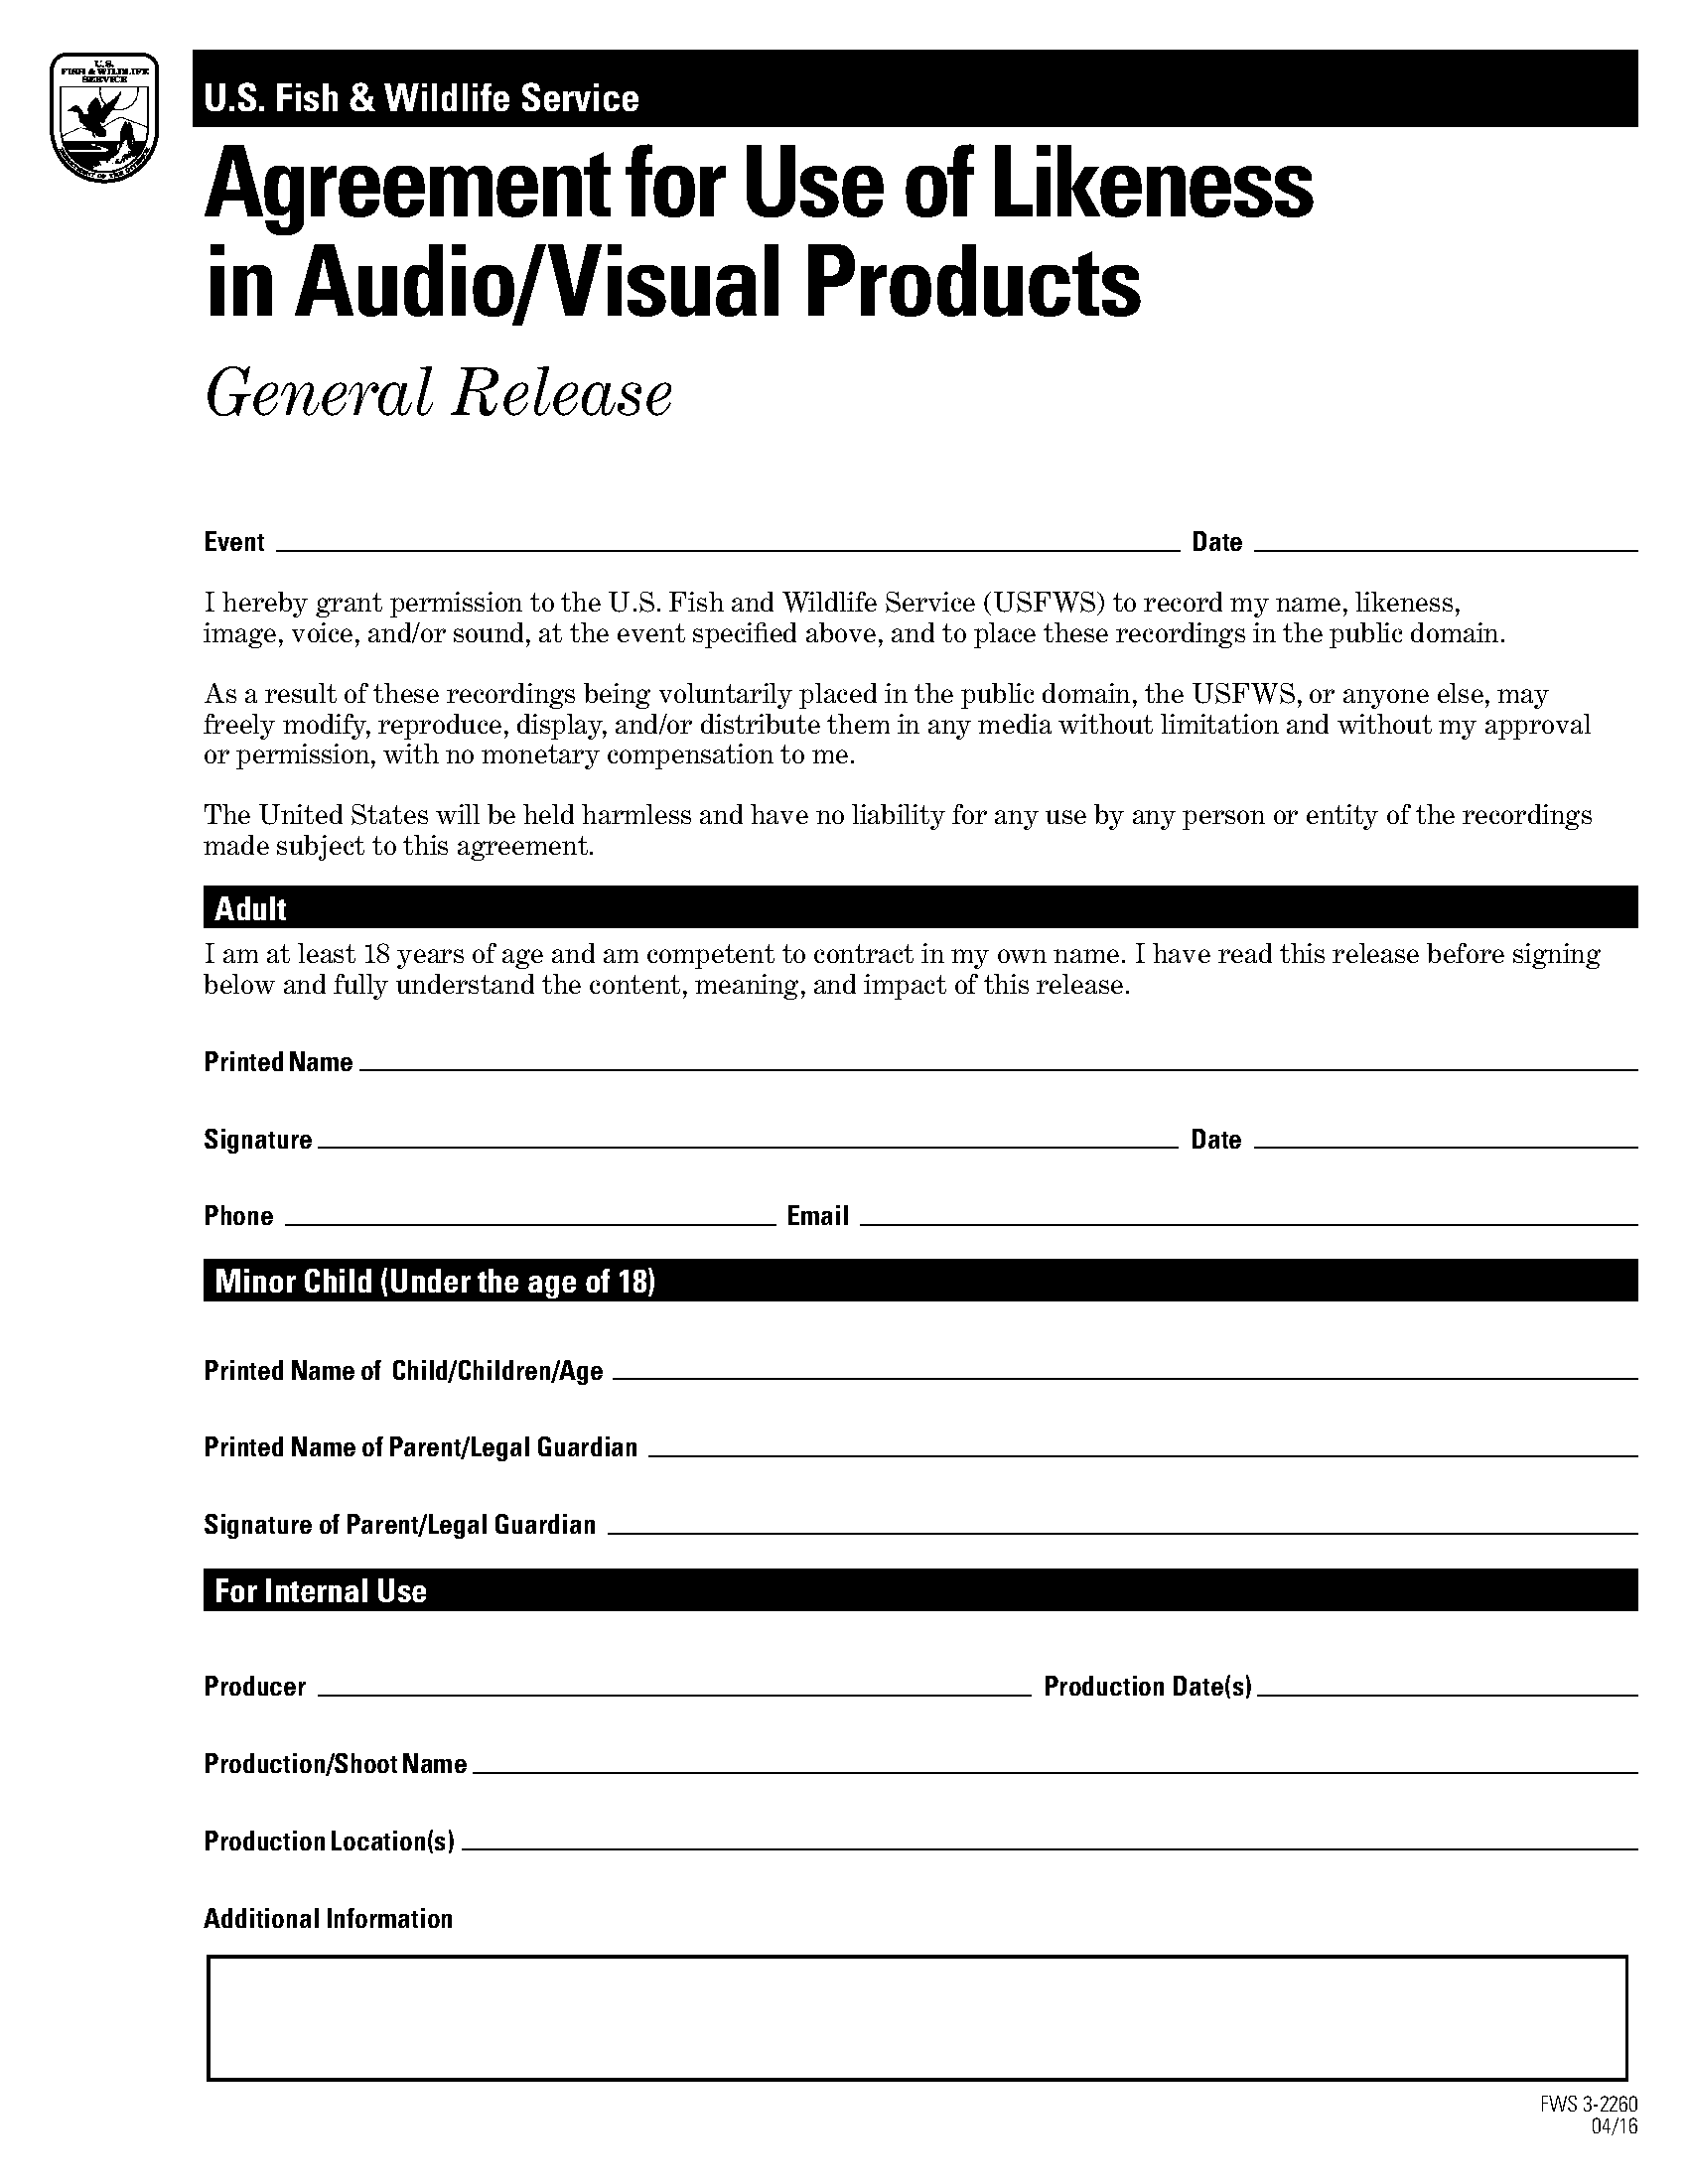 Agreement for Use of Likeness in Audio/Visual Products